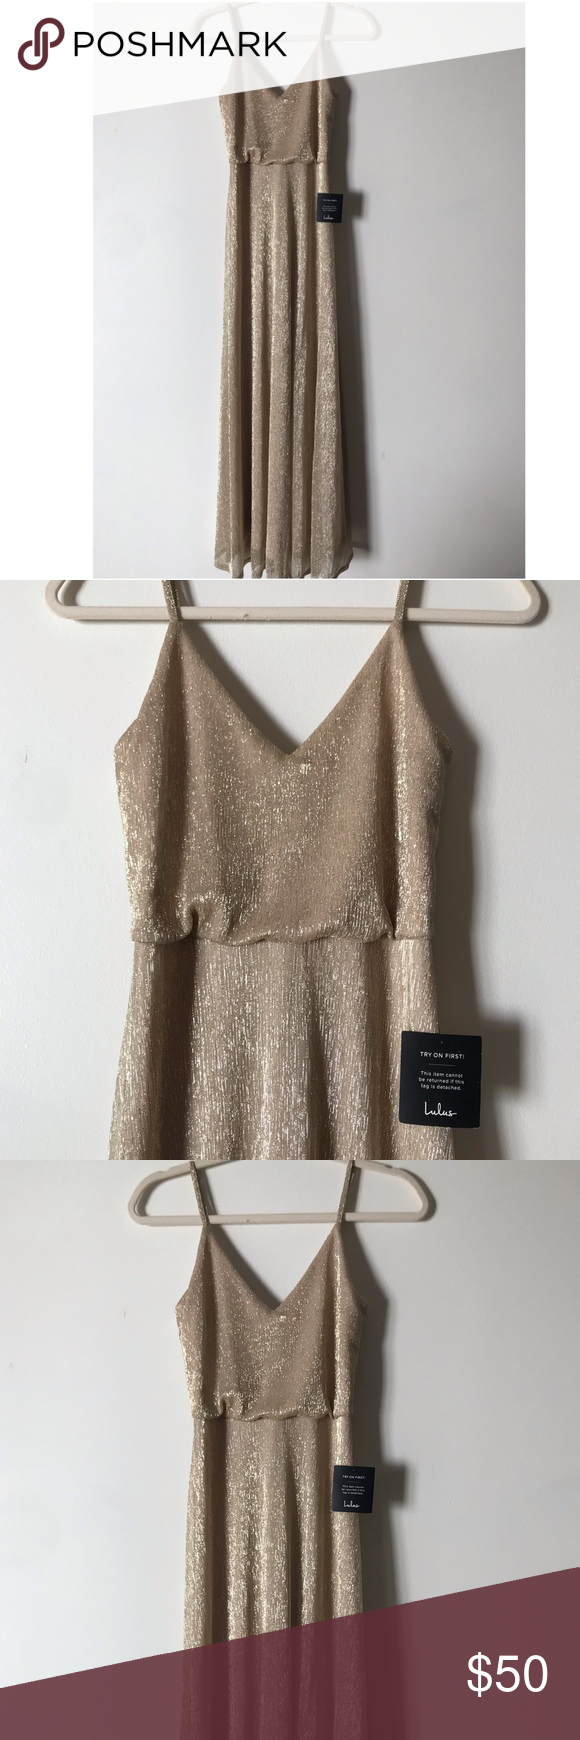 e598ecad0c FRIEND OF THE GLAM GOLD MAXI DRESS Never Been Worn! Lulus Exclusive! All the